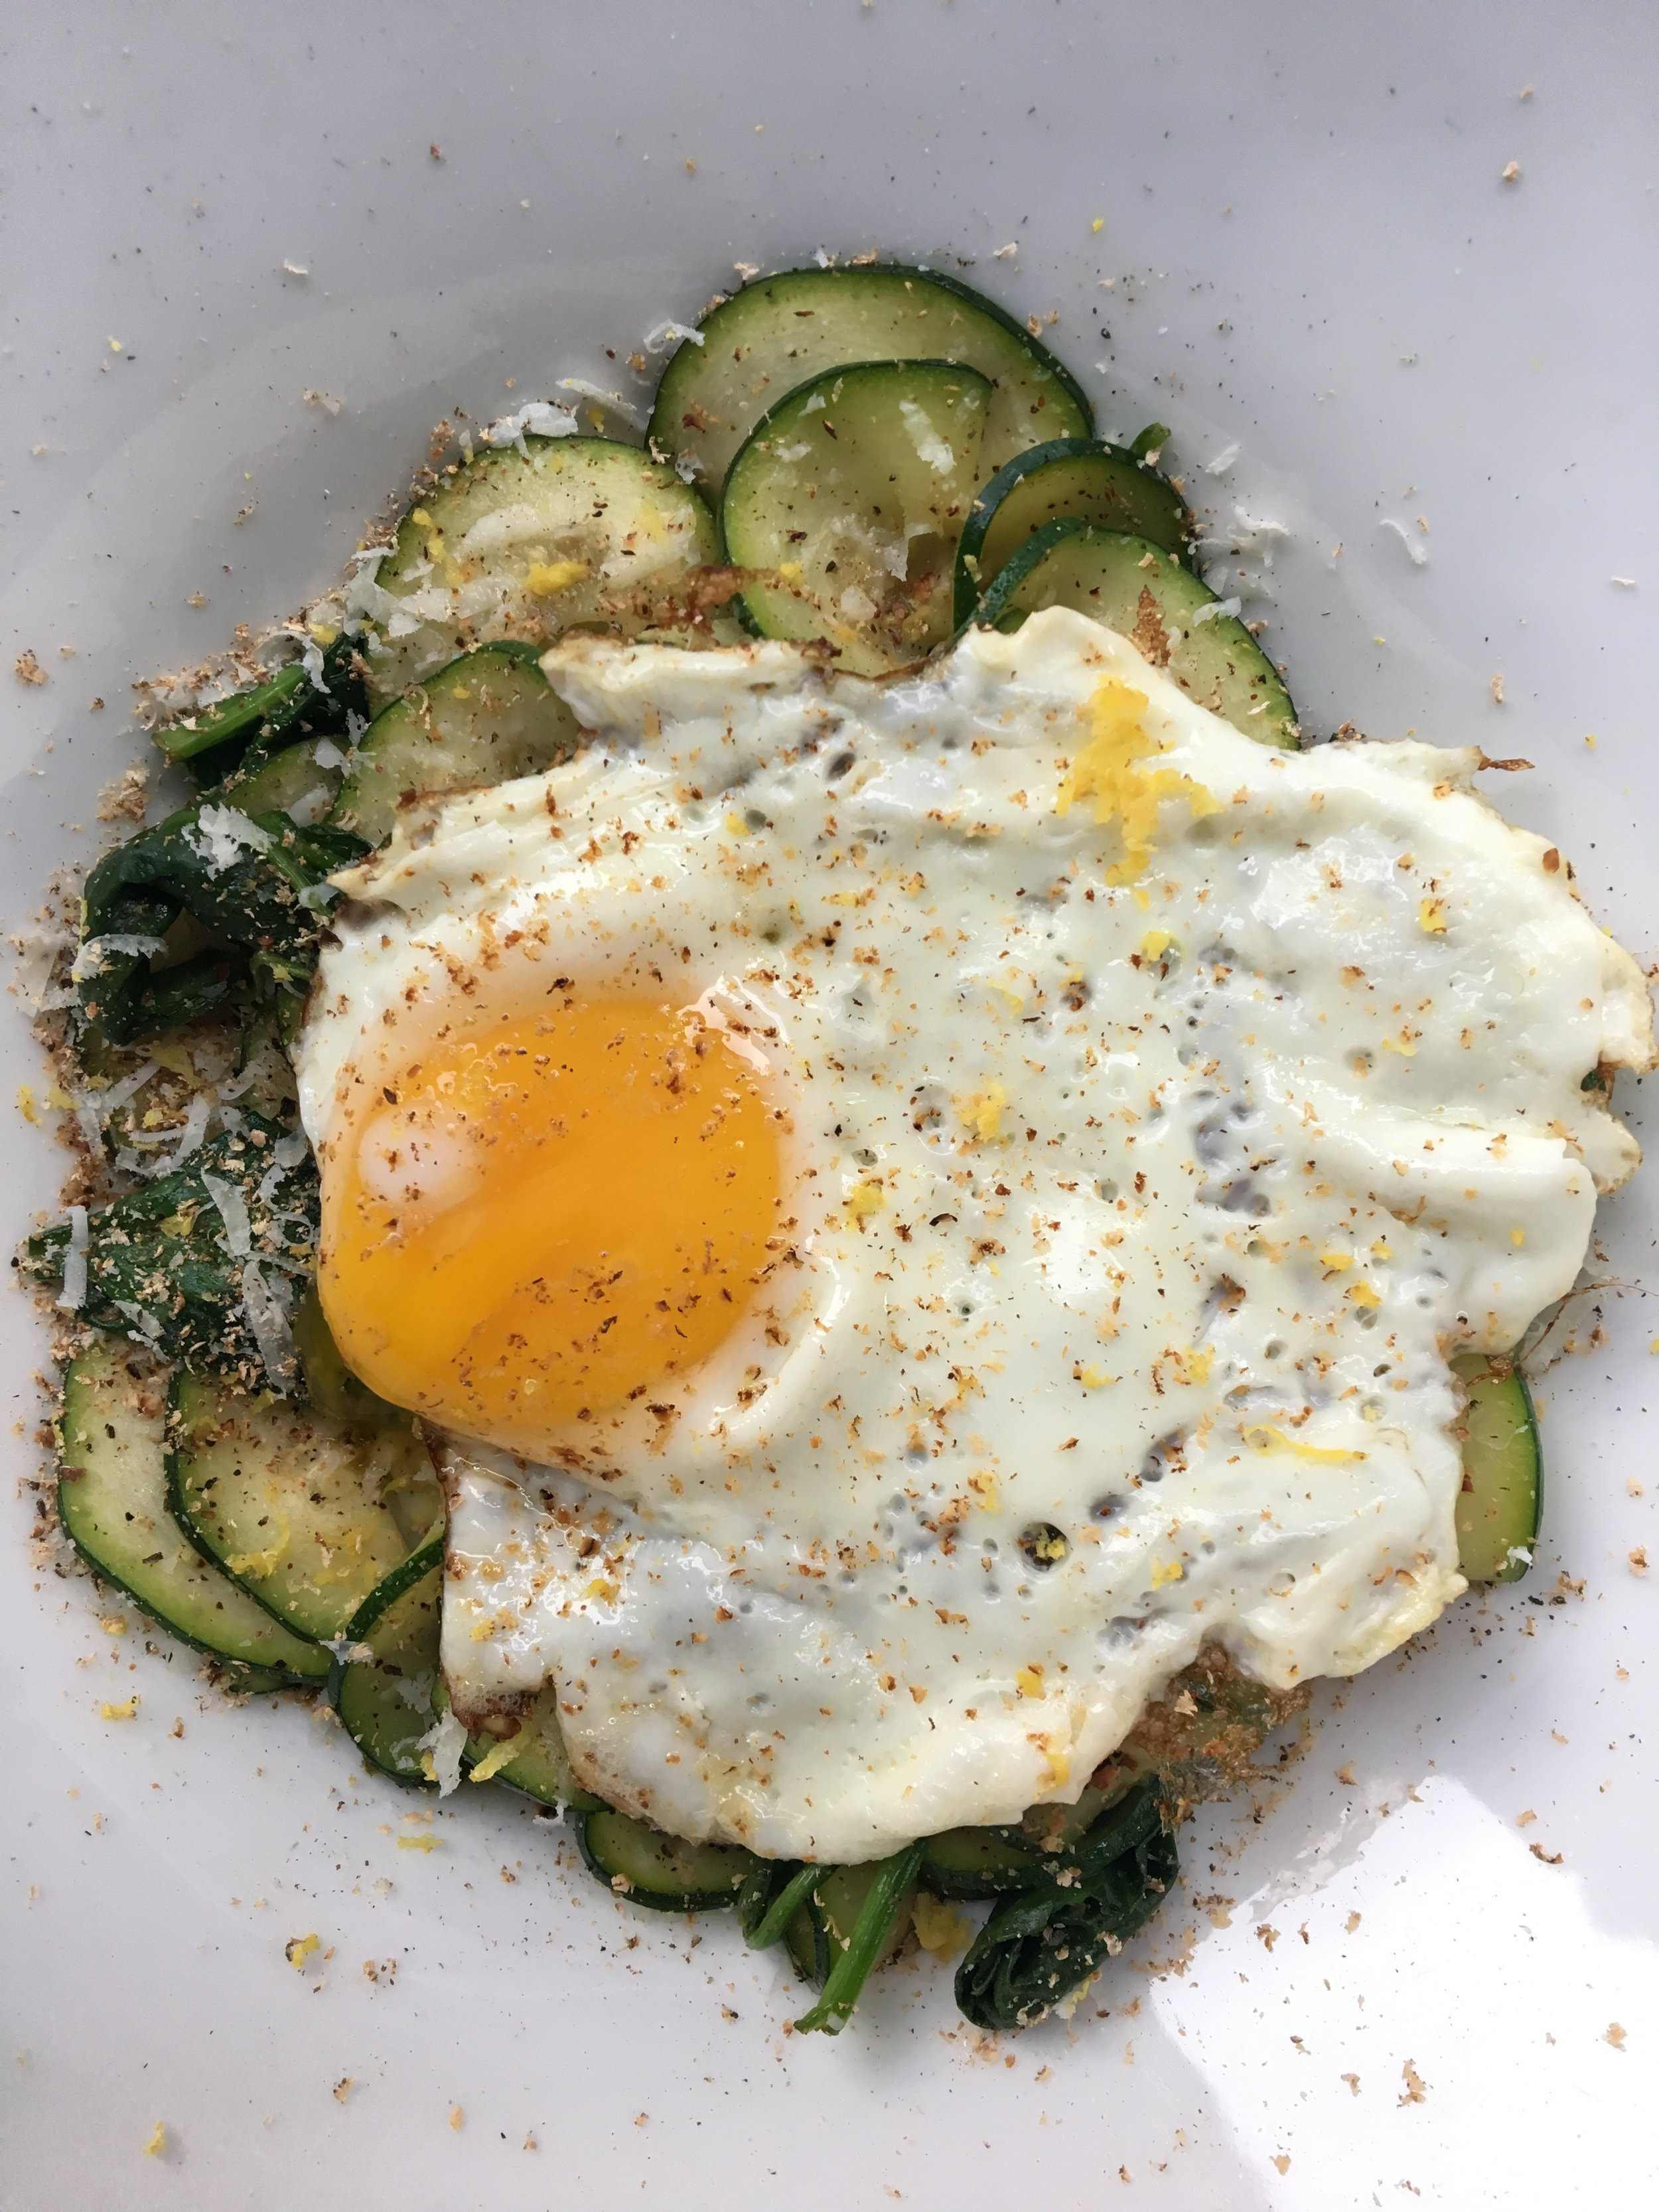 Zoodle + Egg: Lemon Zest / Nutmeg / Pecorino / Spinach / Butter